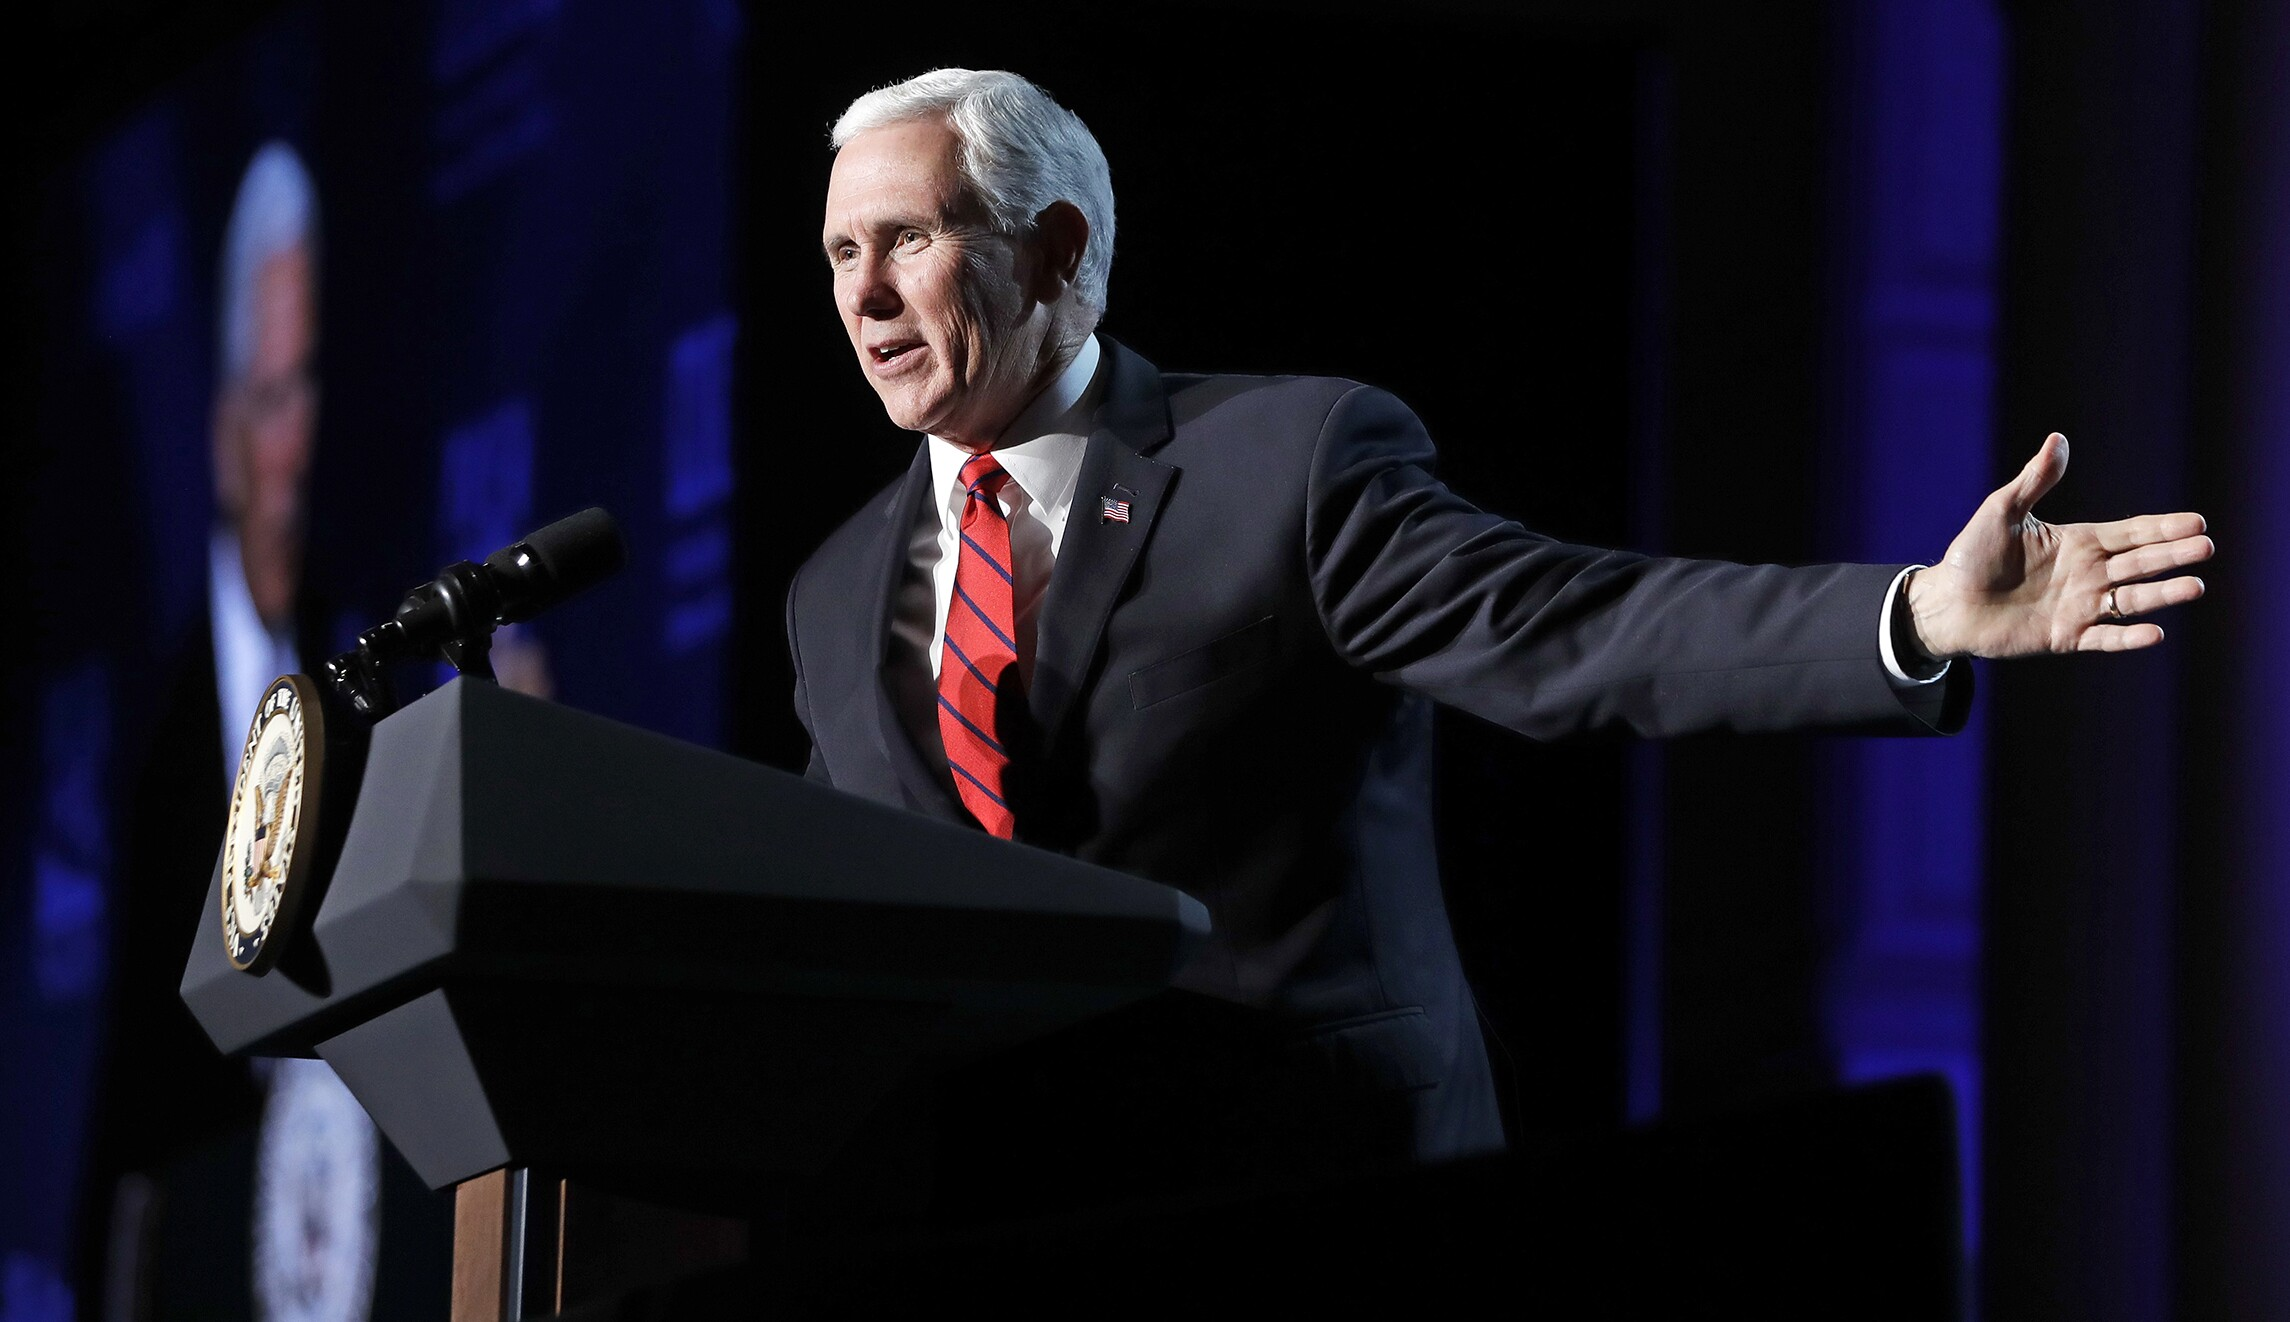 Mike Pence predicts end to legal abortion 'in our time'